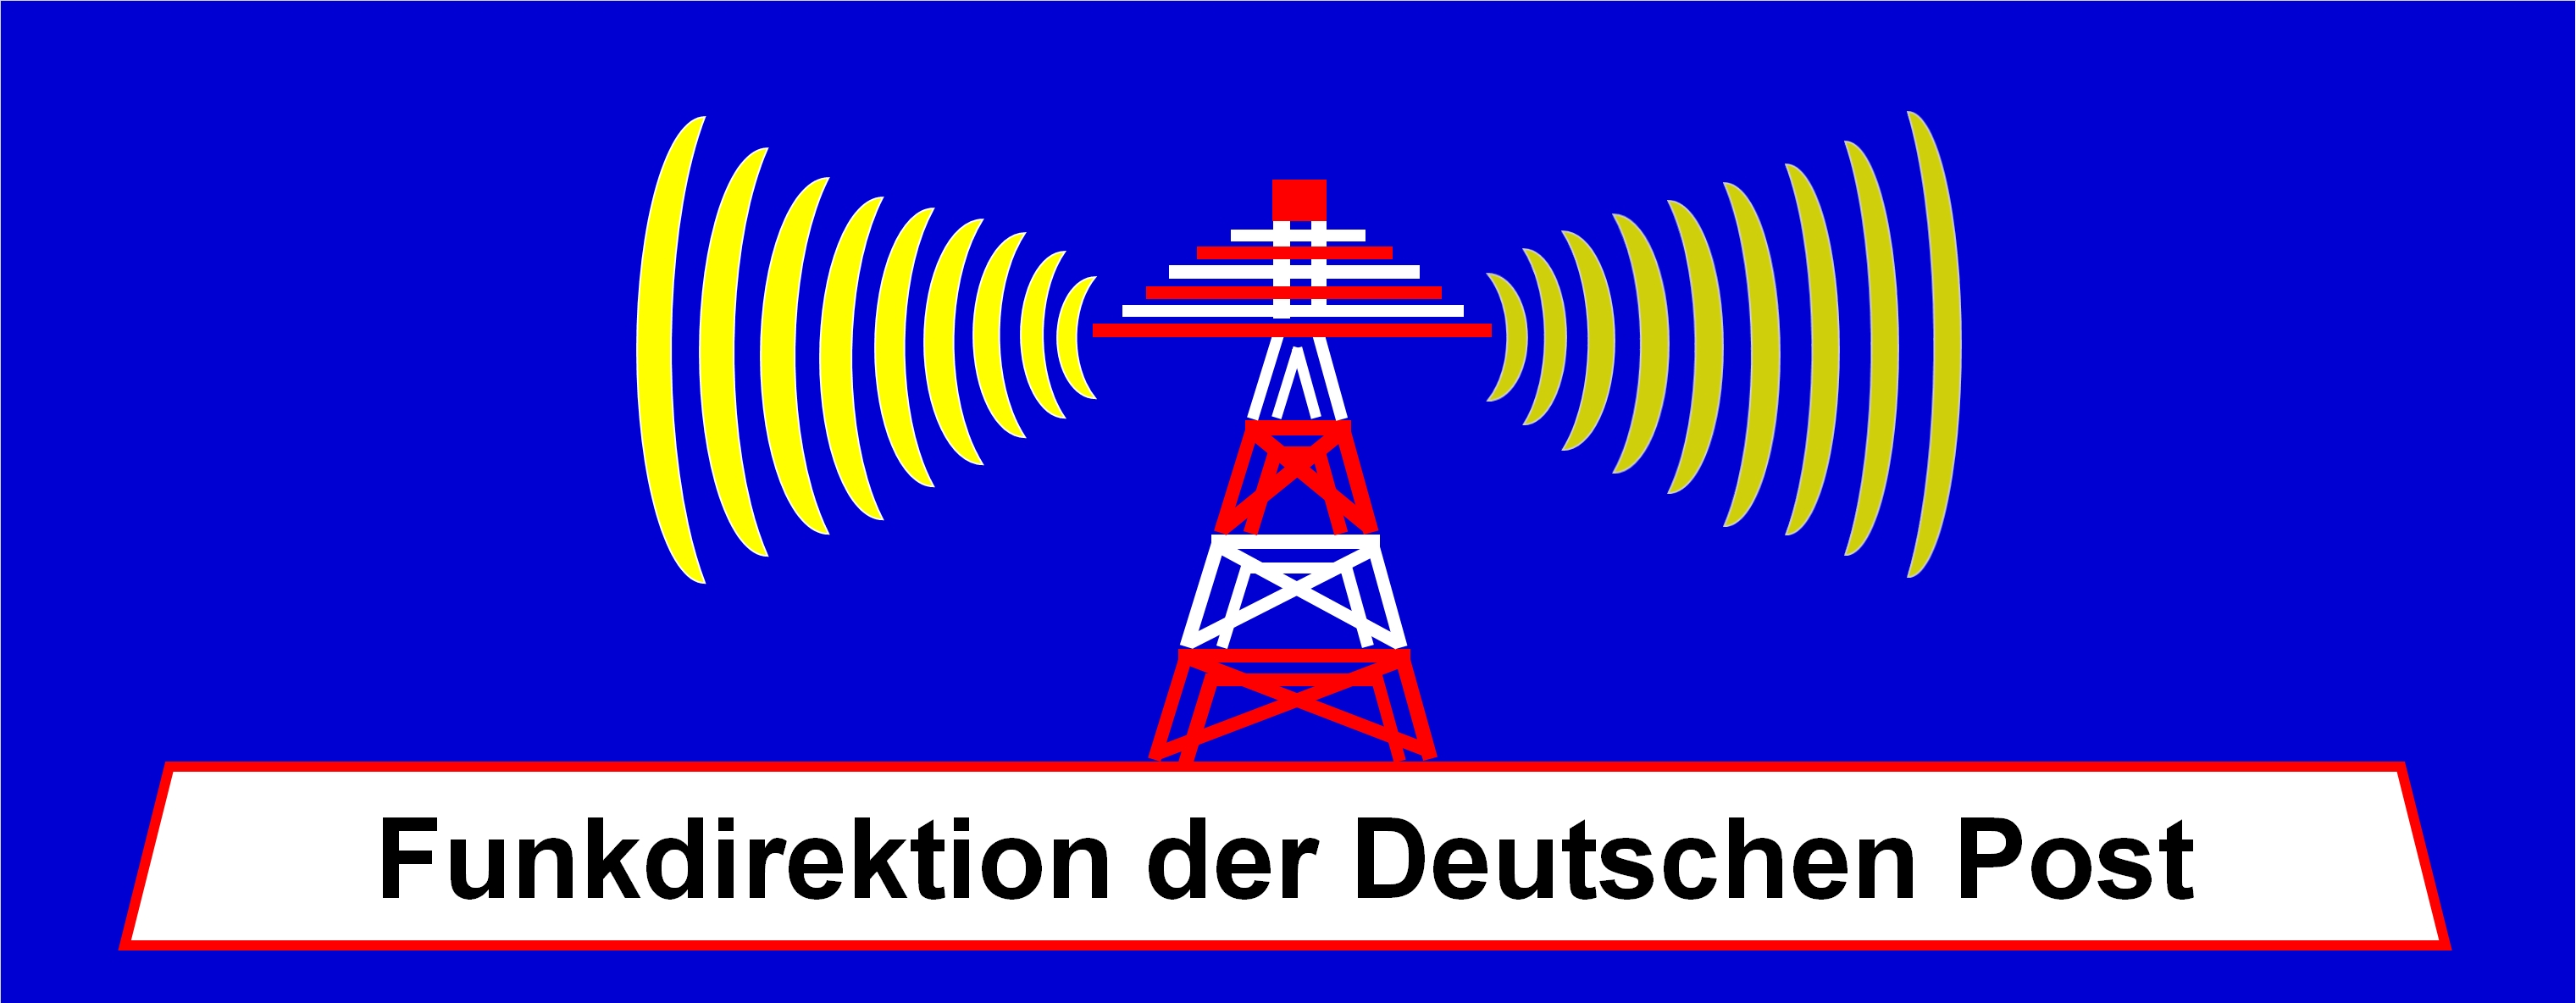 FuDP - Funkdirektion der Deutschen Post